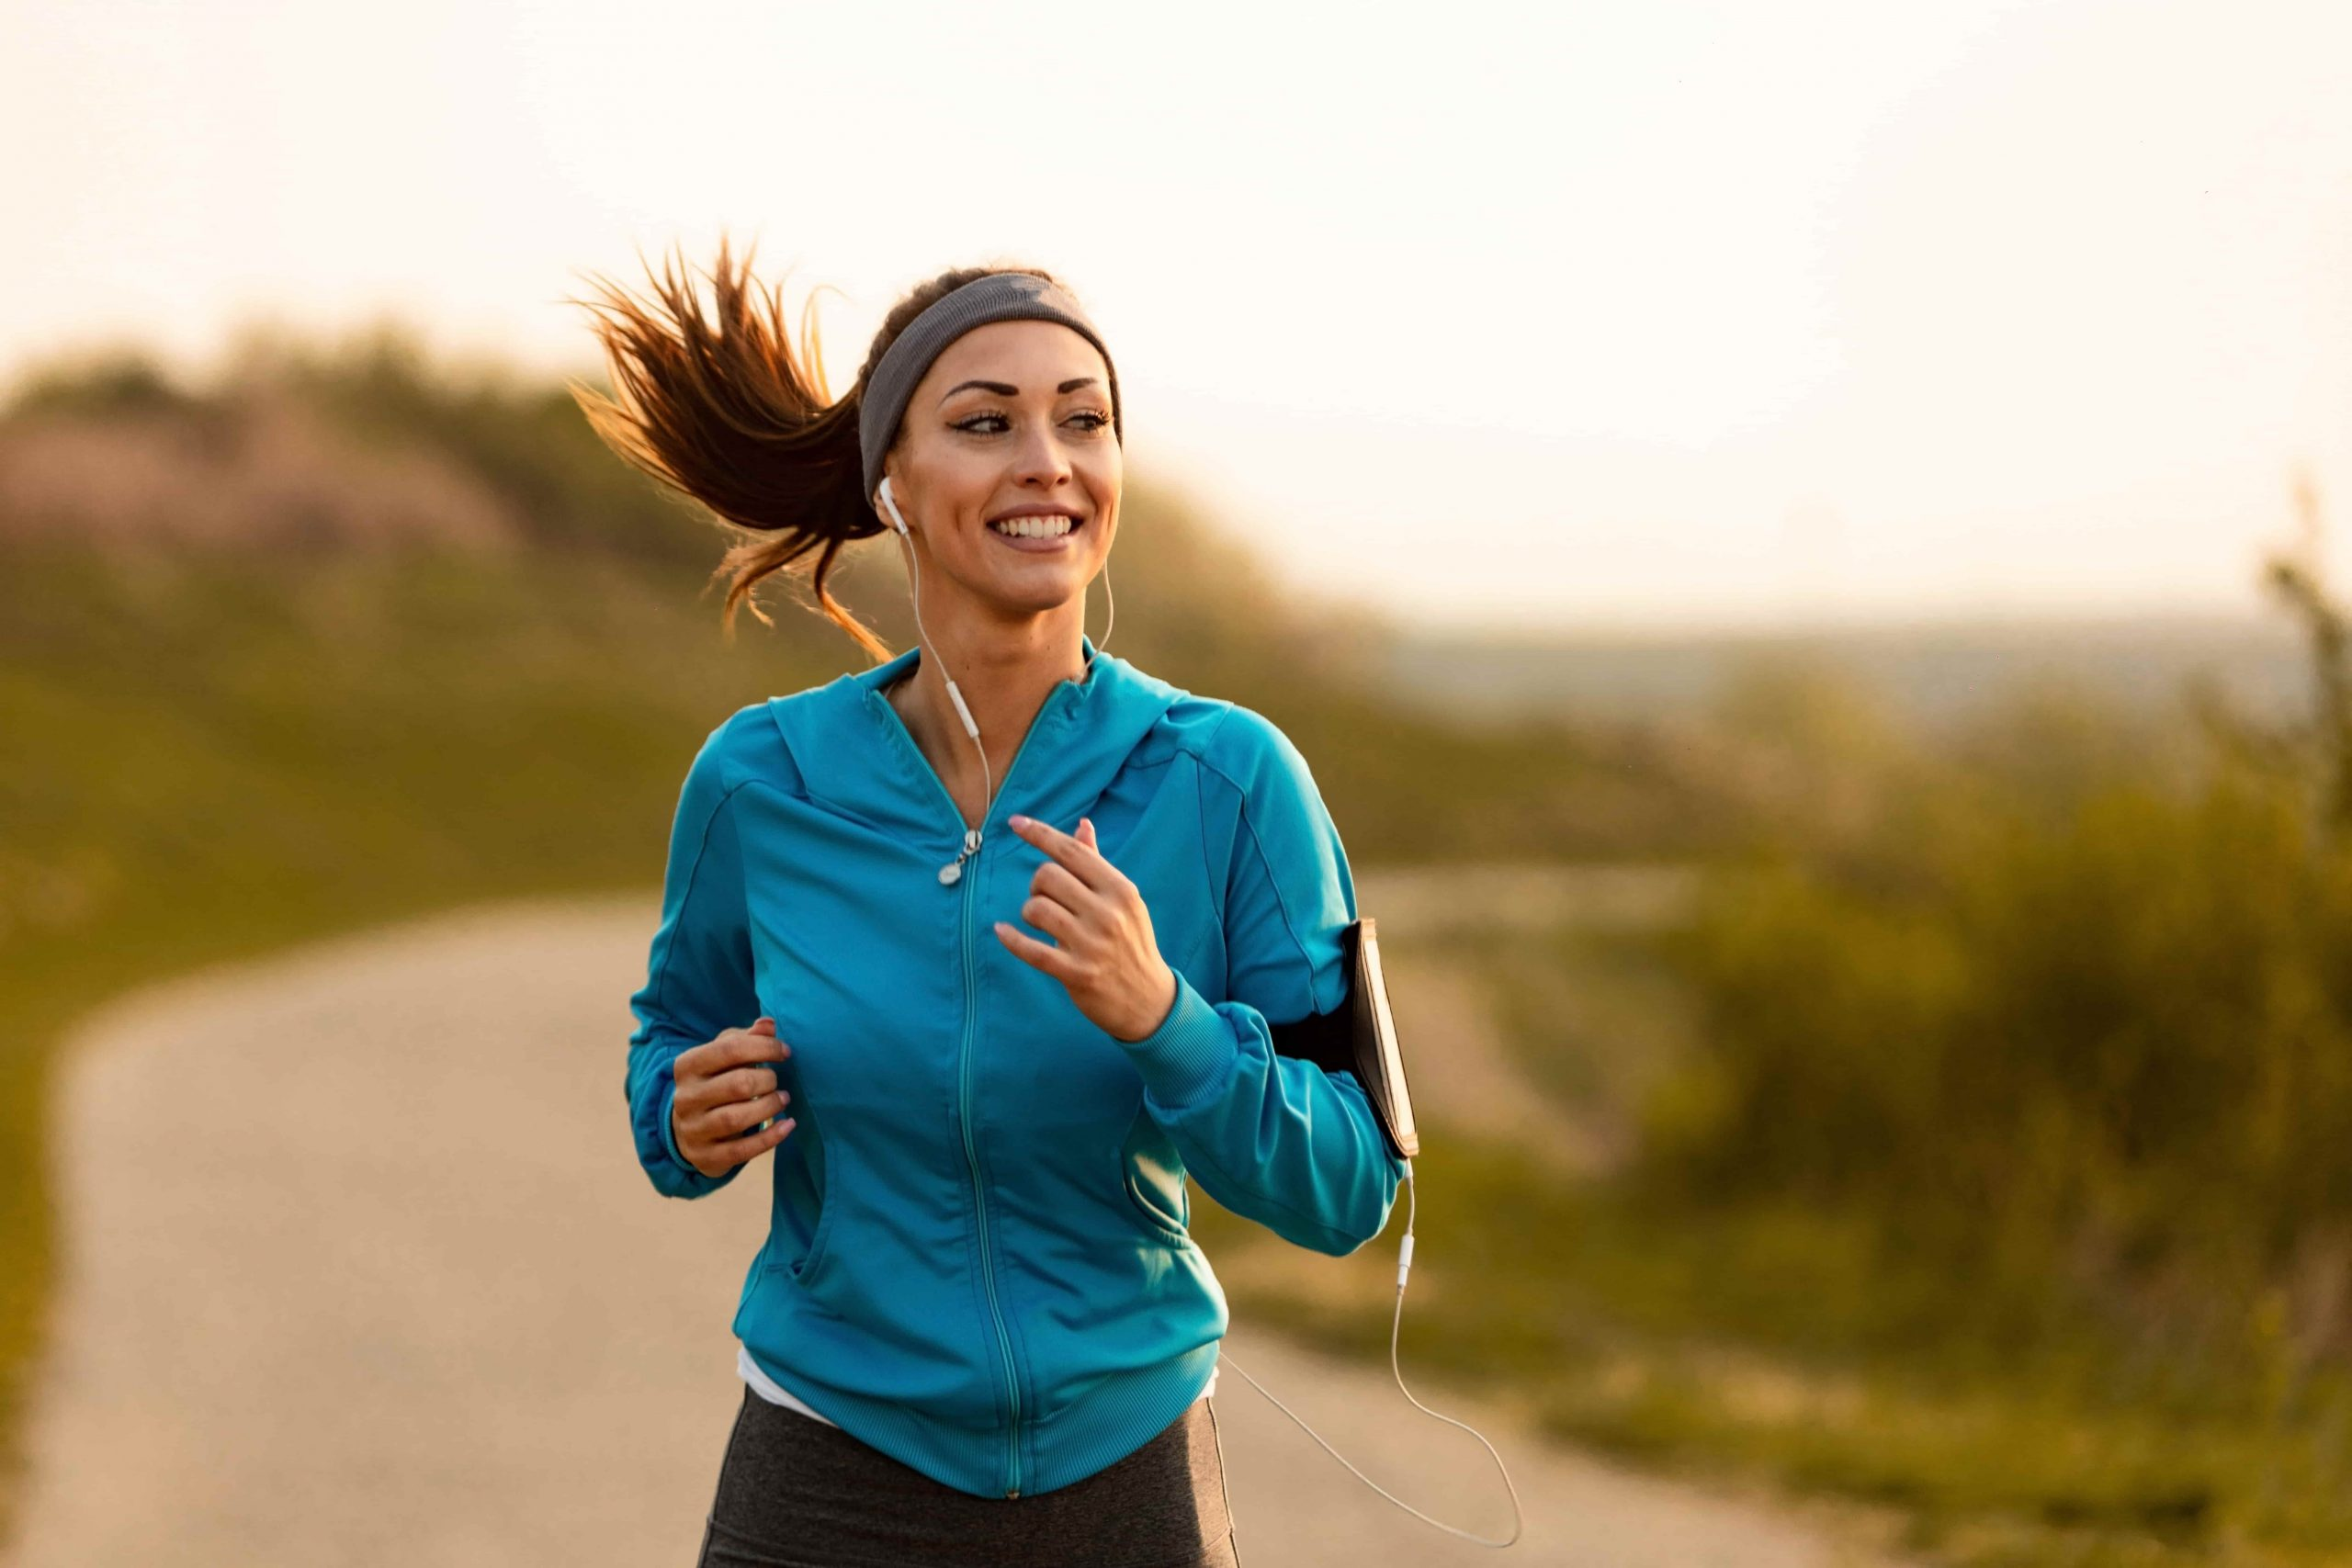 Woman jogging and listening to music in headphones